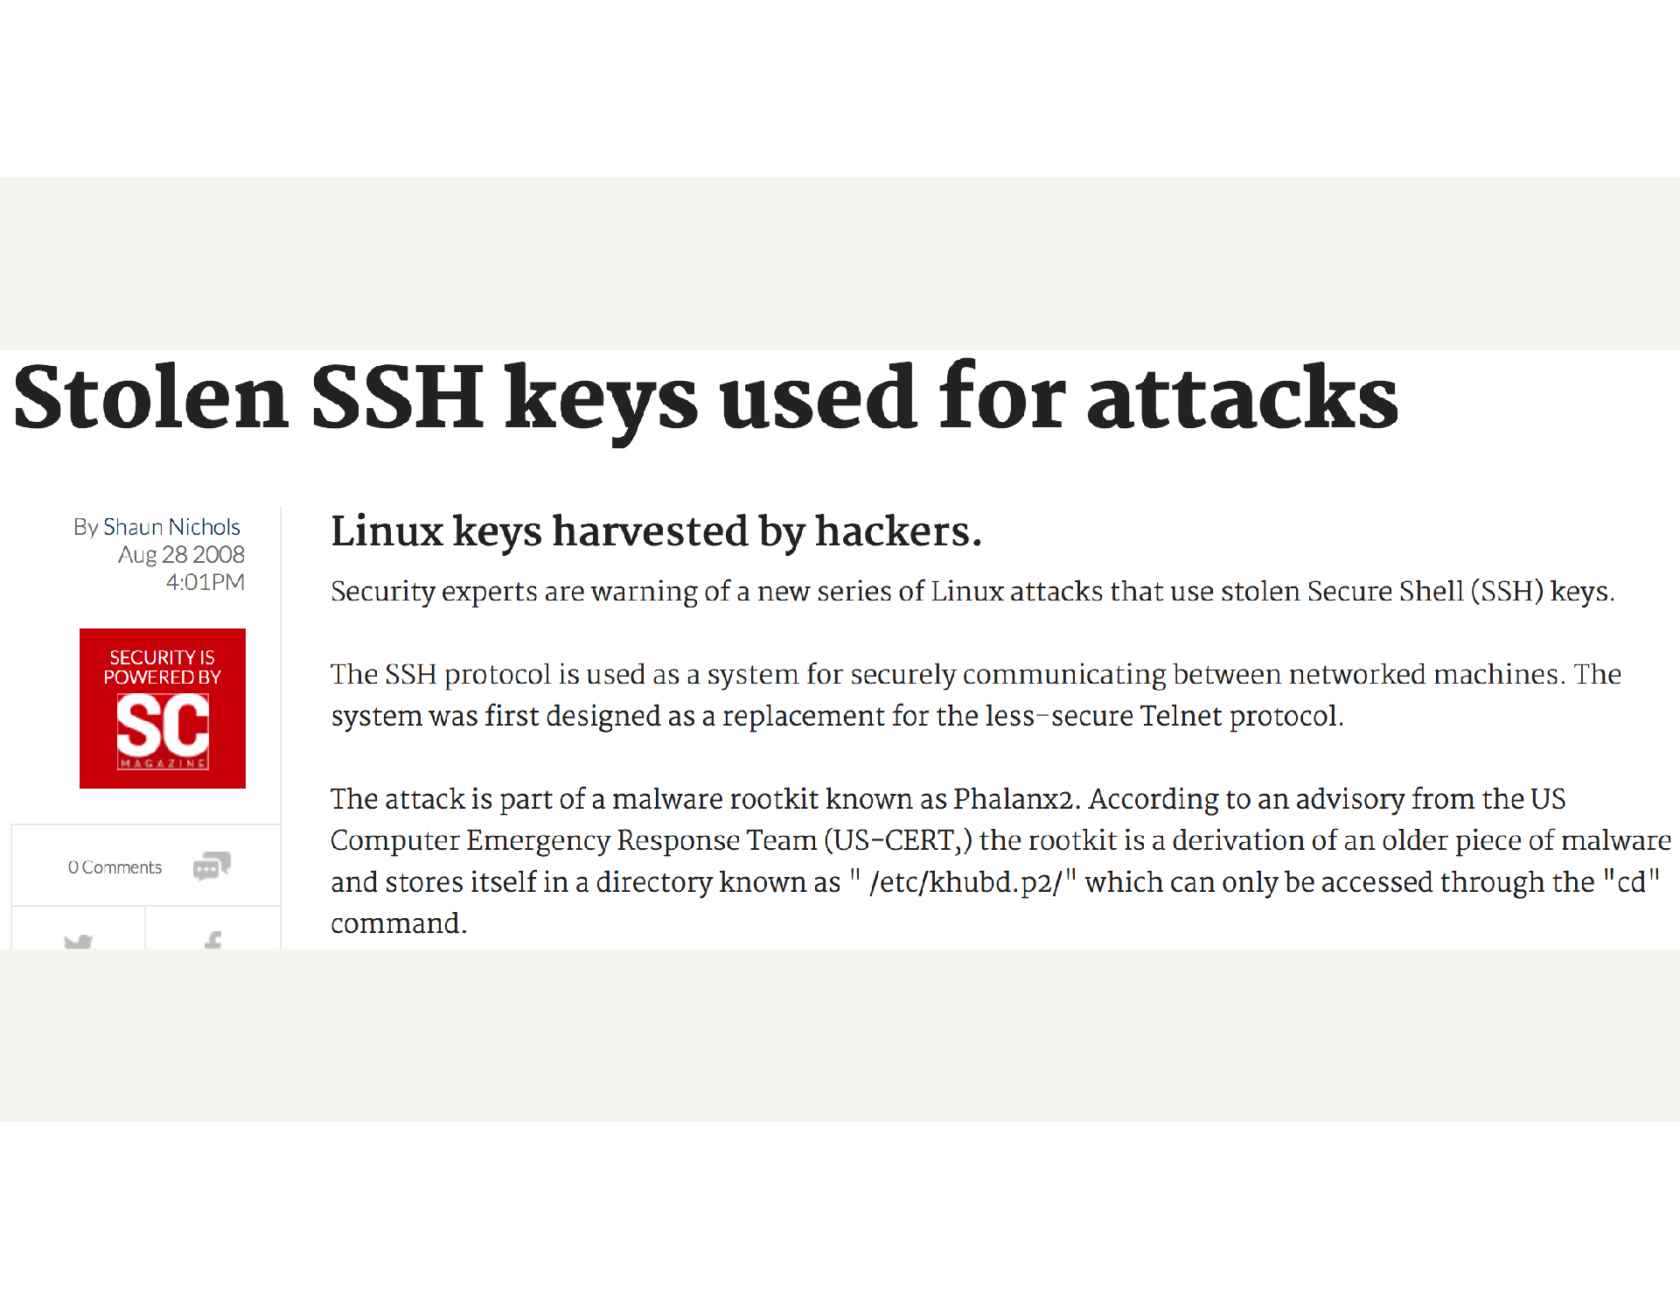 BLESS: Better Security and Ops for SSH Access